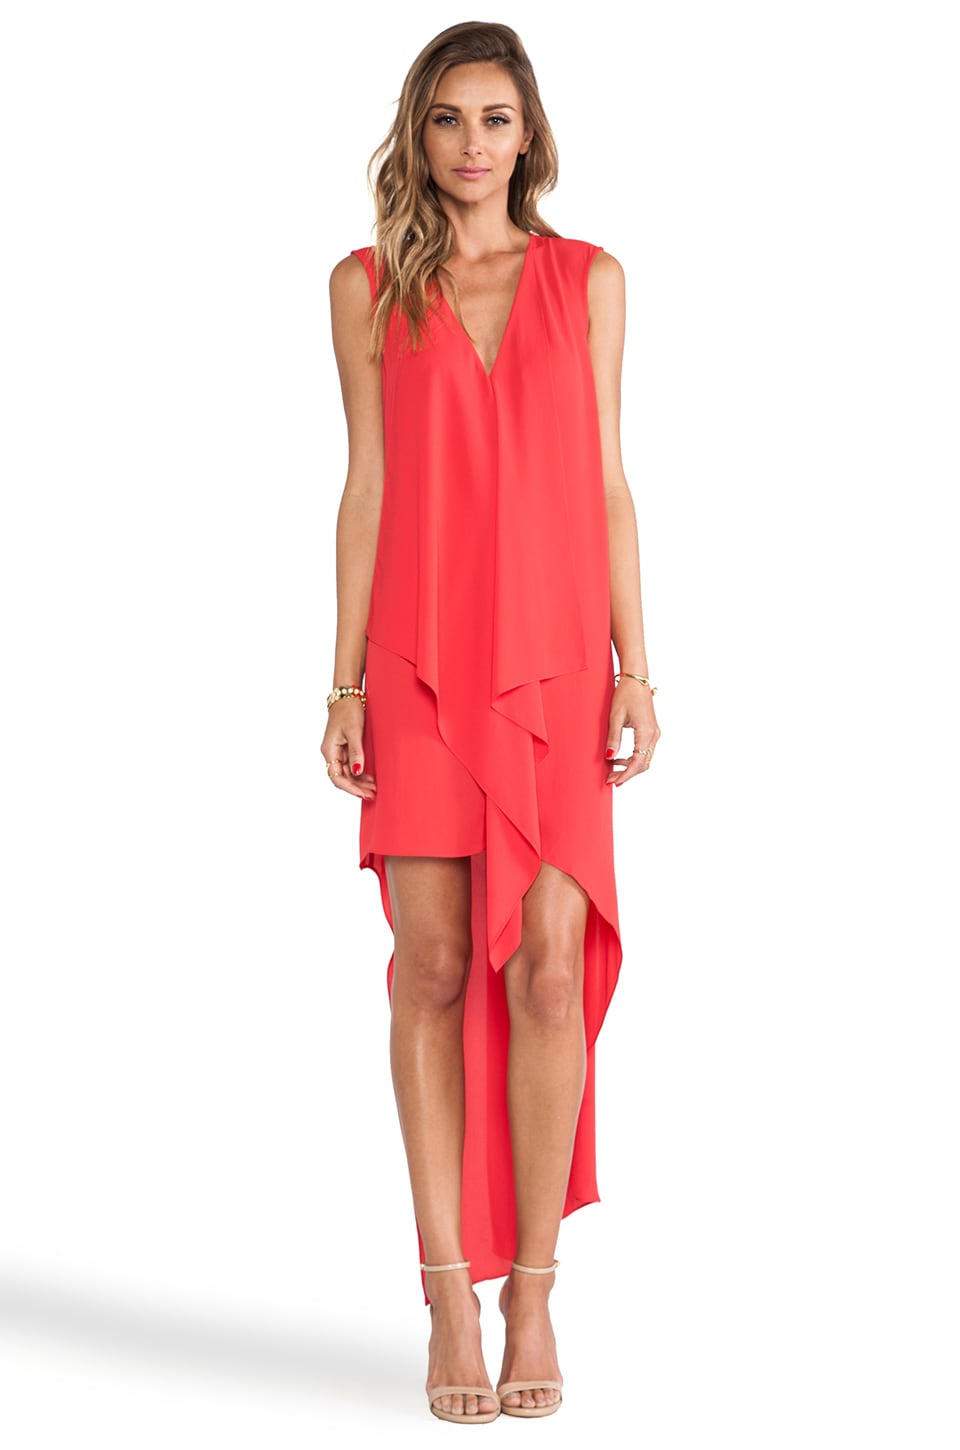 BCBGMAXAZRIA Tara Ruffle Front Dress in Lipstick Red